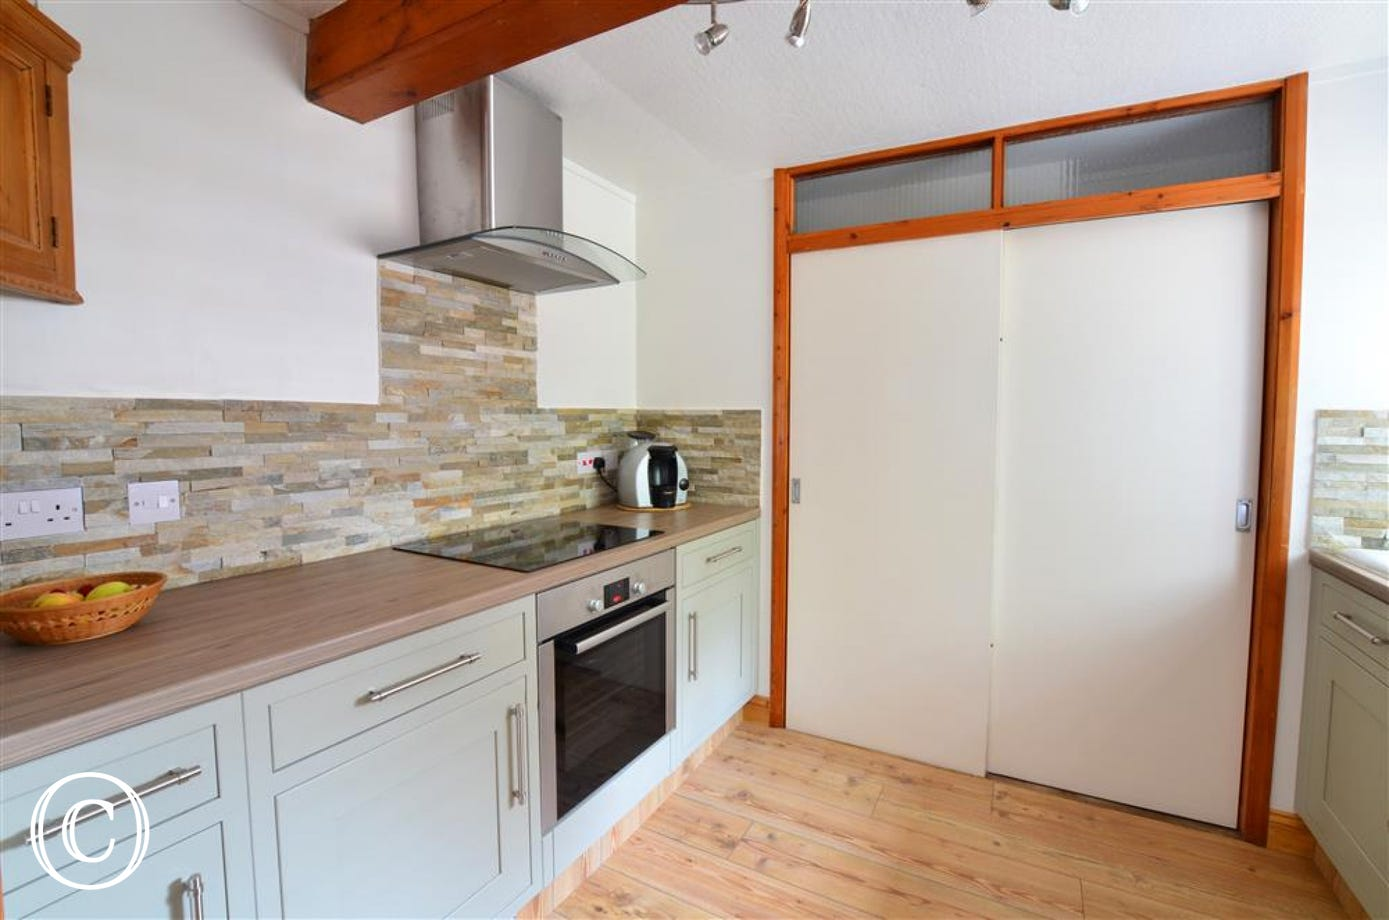 This lovely kitchen is modern, yet still retains original features